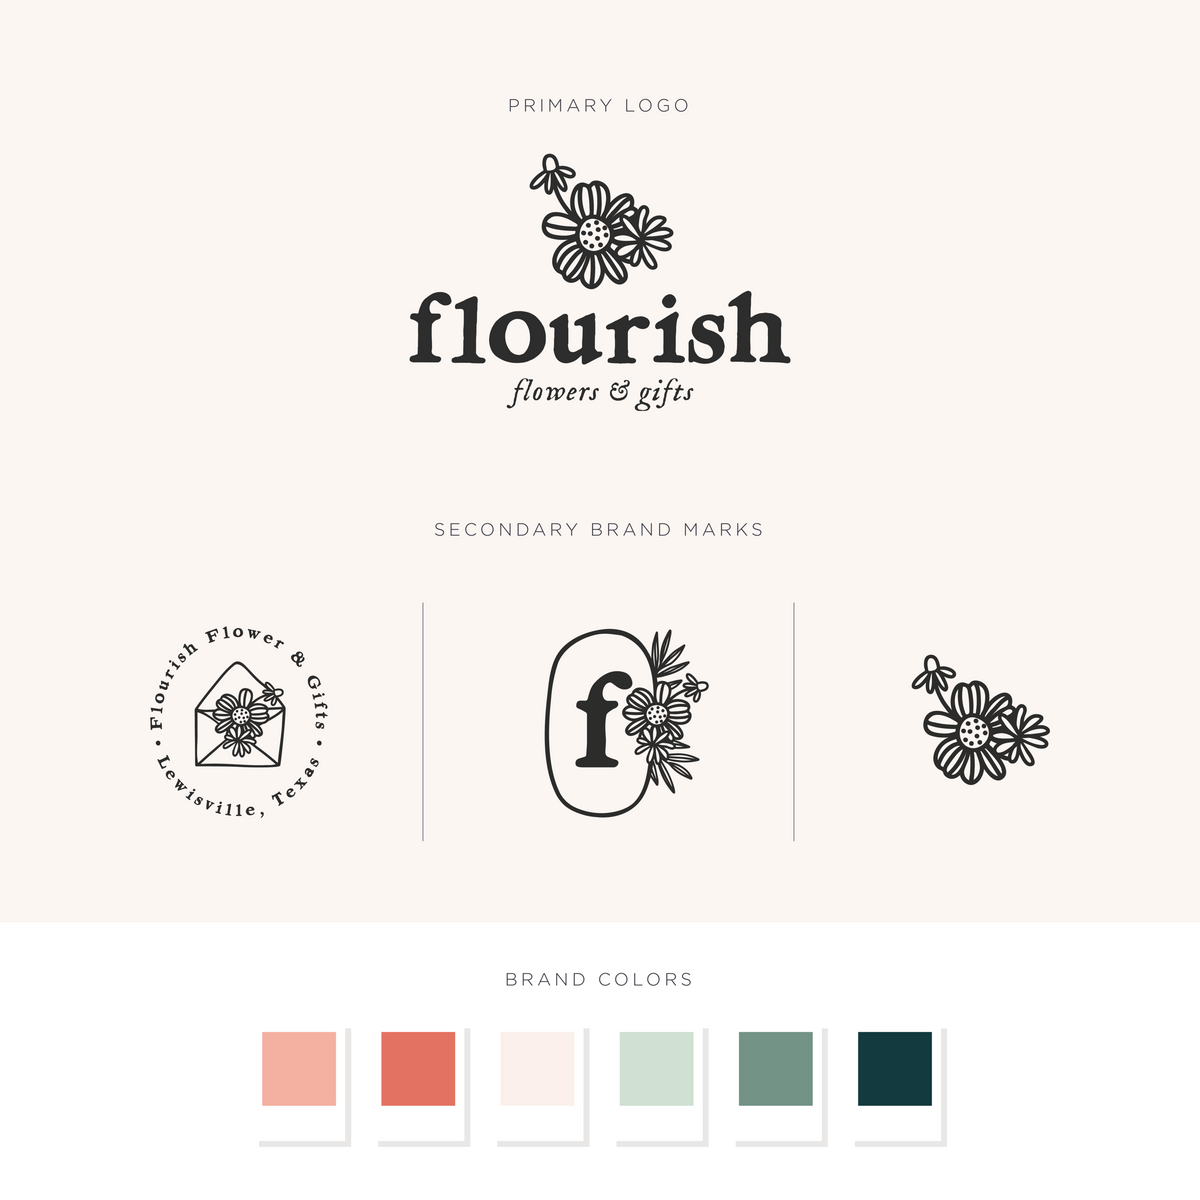 Flourish Flowers & Gifts logos and brand colors